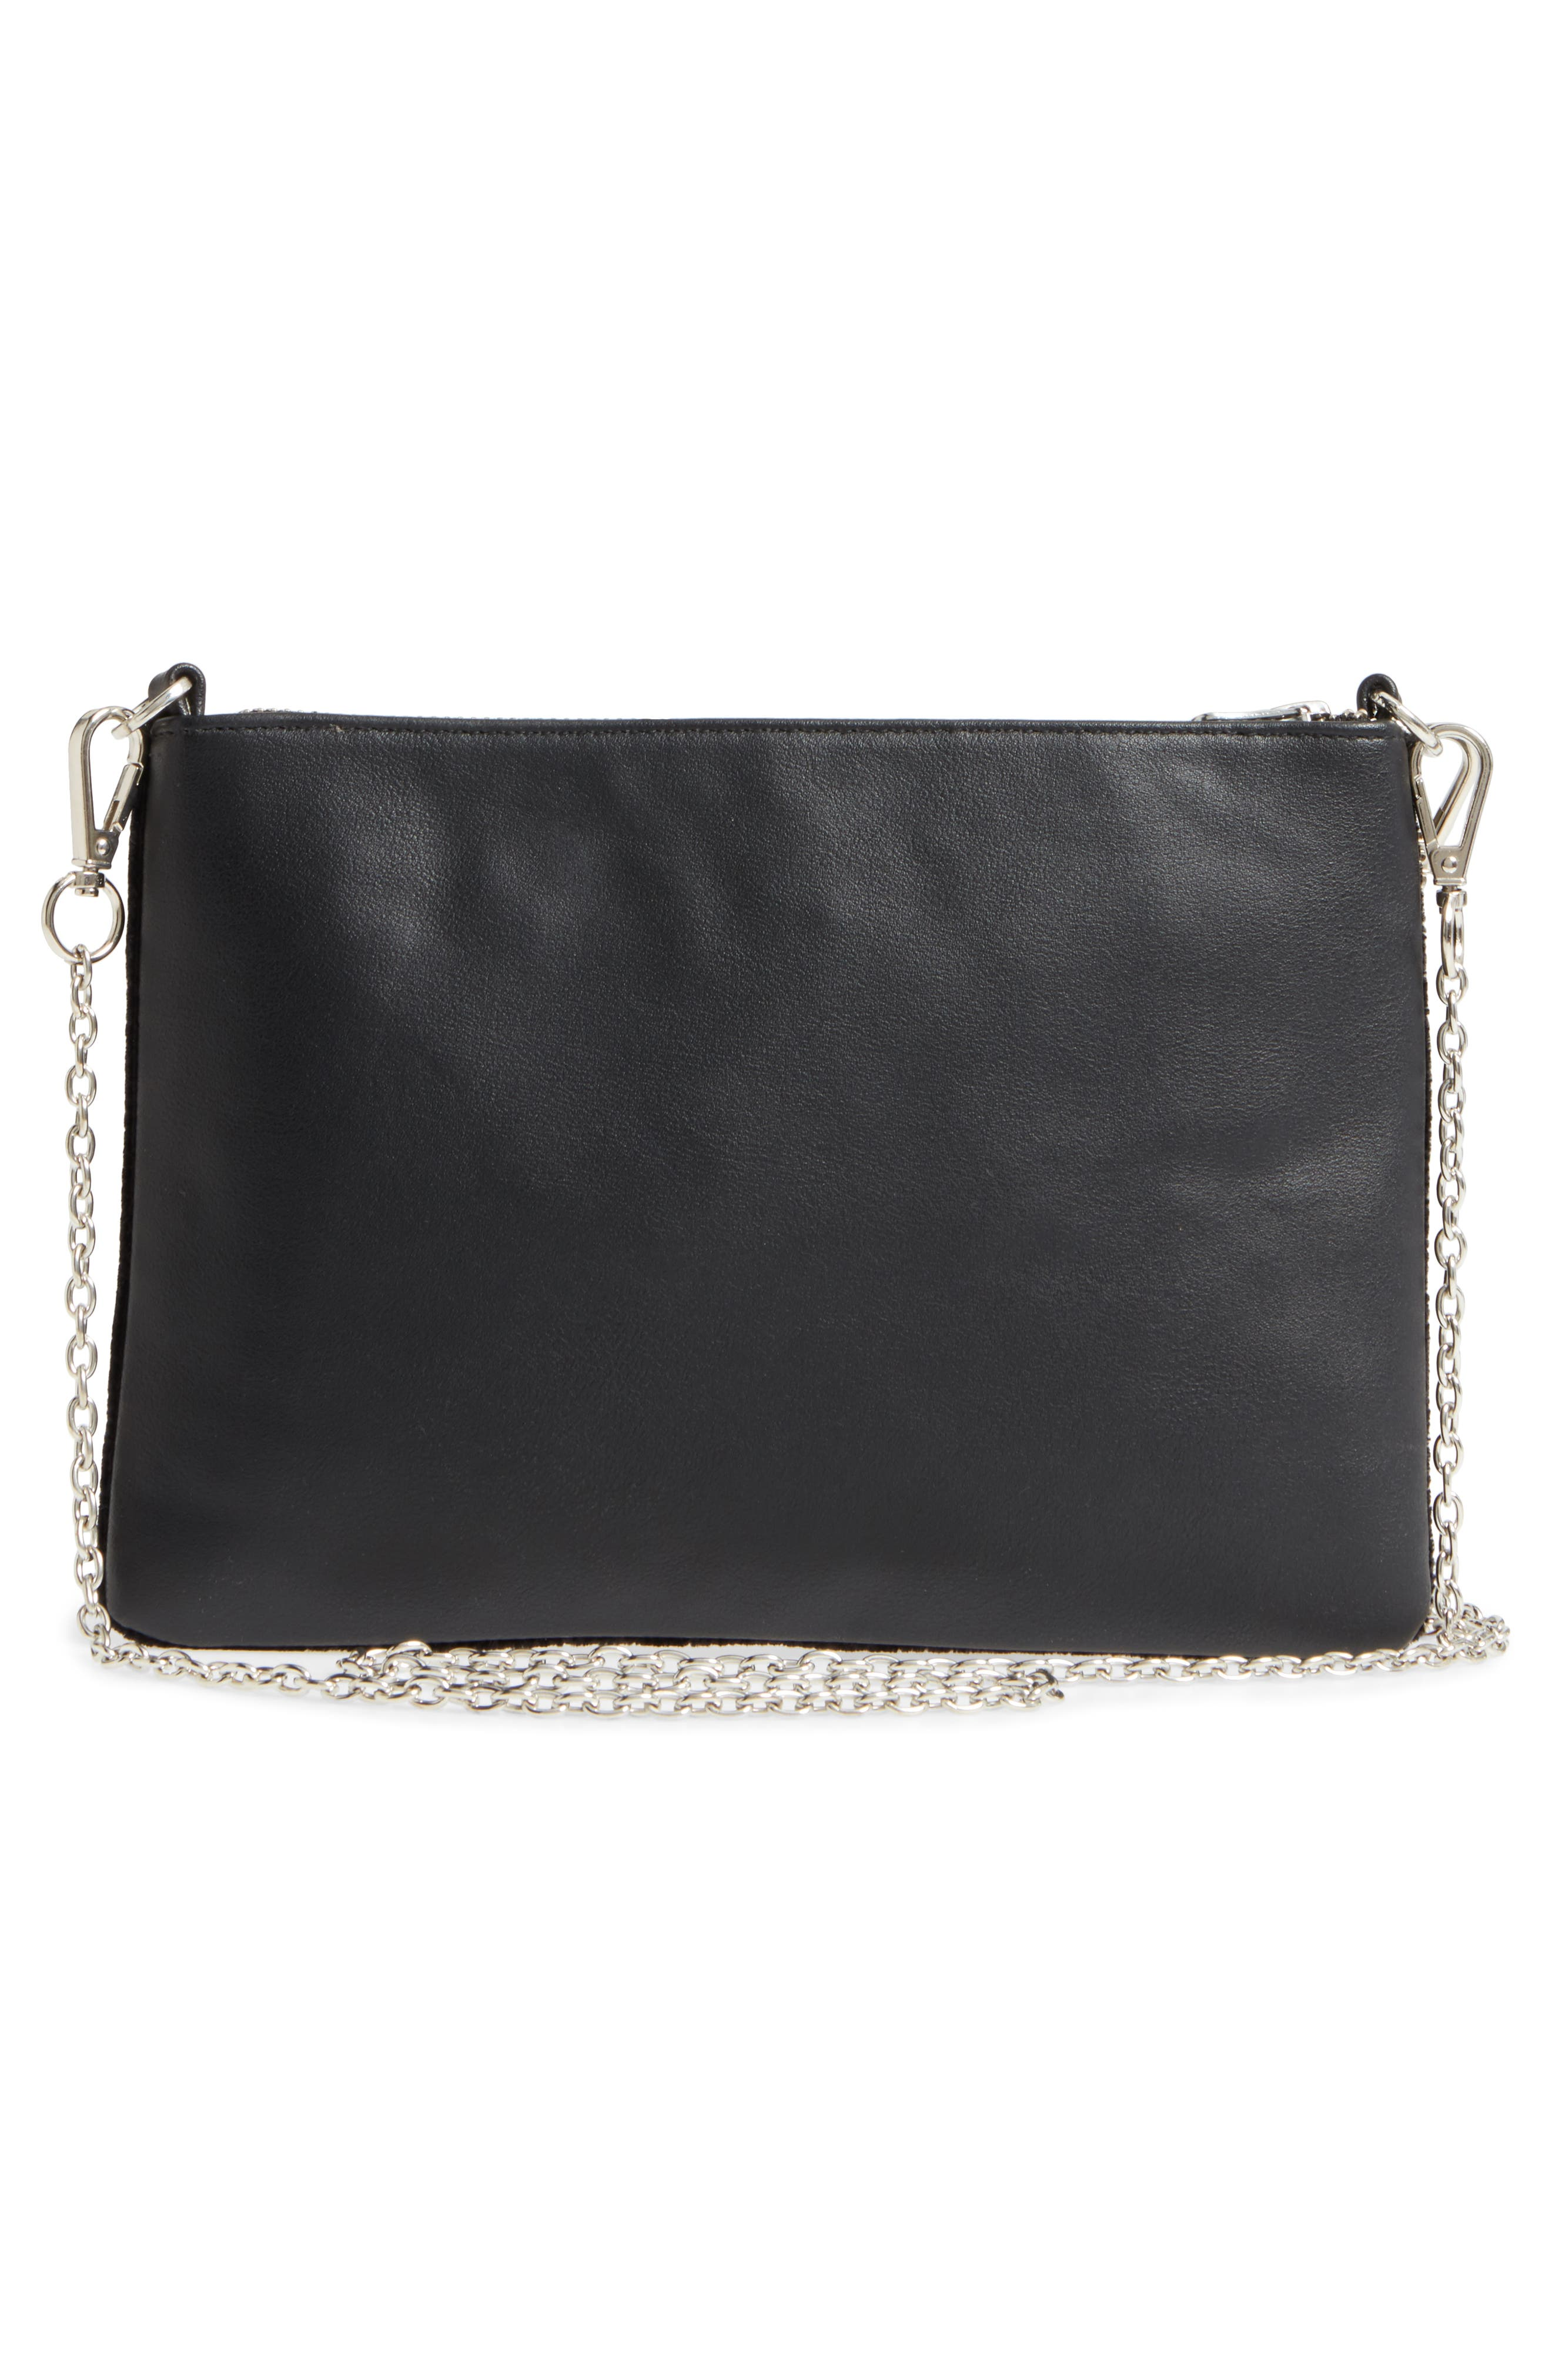 Alternate Image 3  - Chelsea28 Embellished Faux Leather Clutch